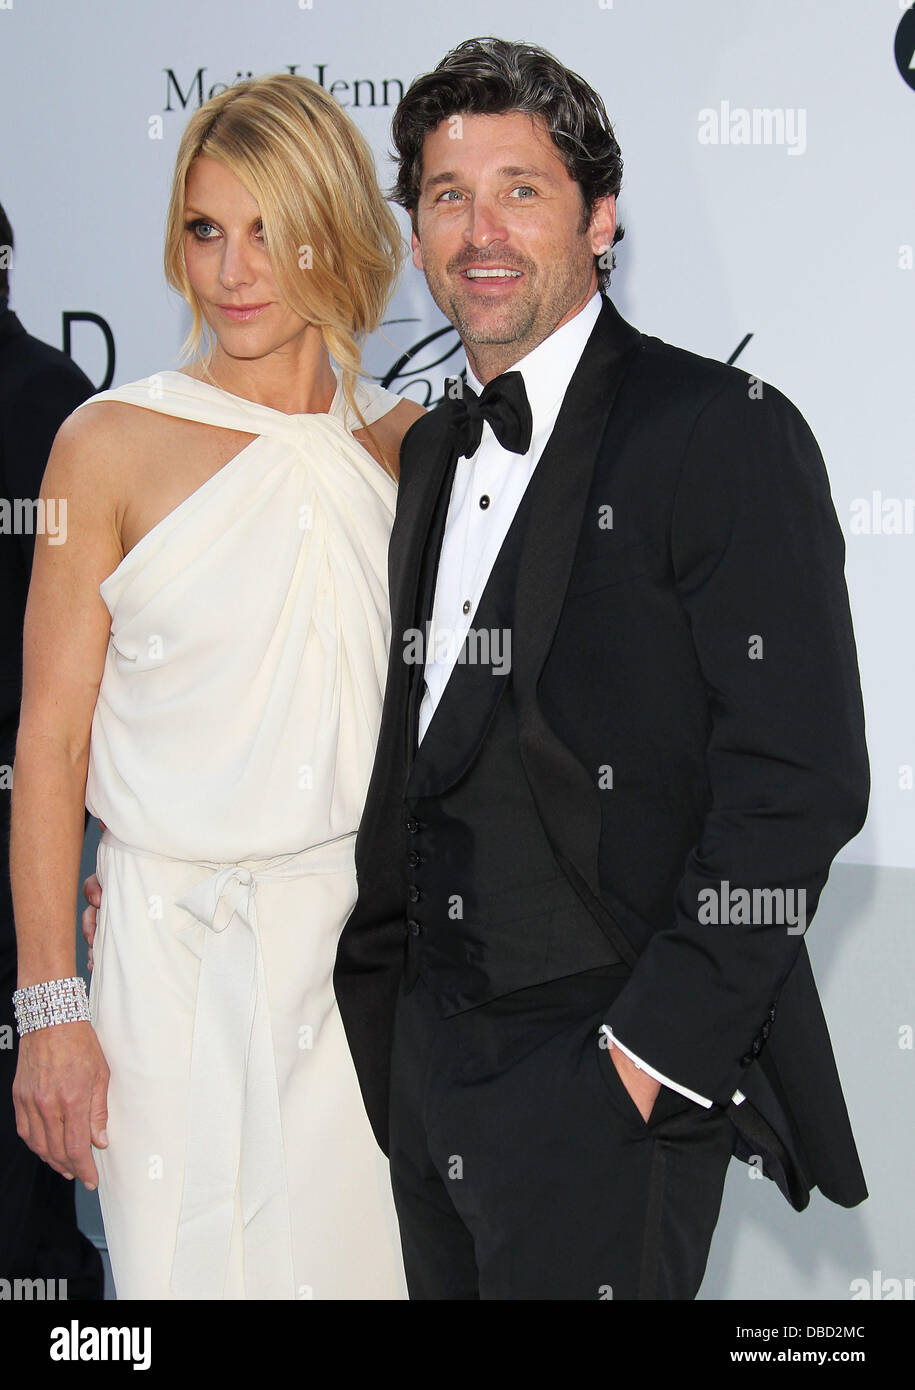 Actor Patrick Dempsey And His Wife Jillian Dempsey 2011 Cannes Stock